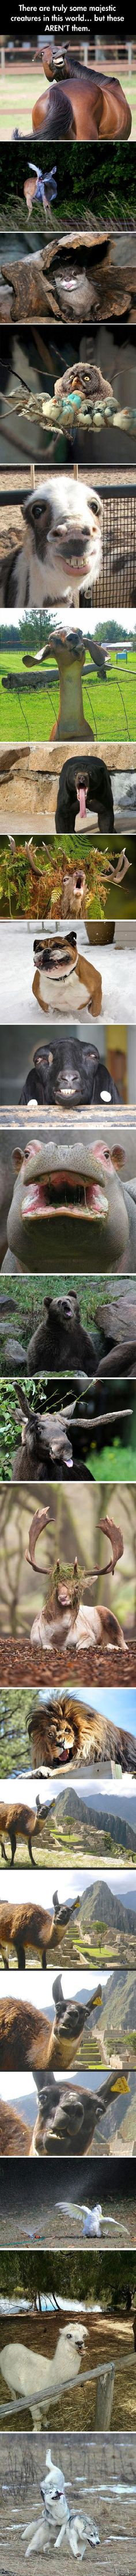 Majestic Animals - Funny Animal Quotes - - This made me laugh so hard! I hope it can cheer anyone up who is having a bad day The post Majestic Animals appeared first on Gag Dad. Animal Jokes, Funny Animal Memes, Funny Animal Pictures, Cute Funny Animals, Funny Cute, Funny Memes, Funny Pics, Stupid Animals, Funny Stuff